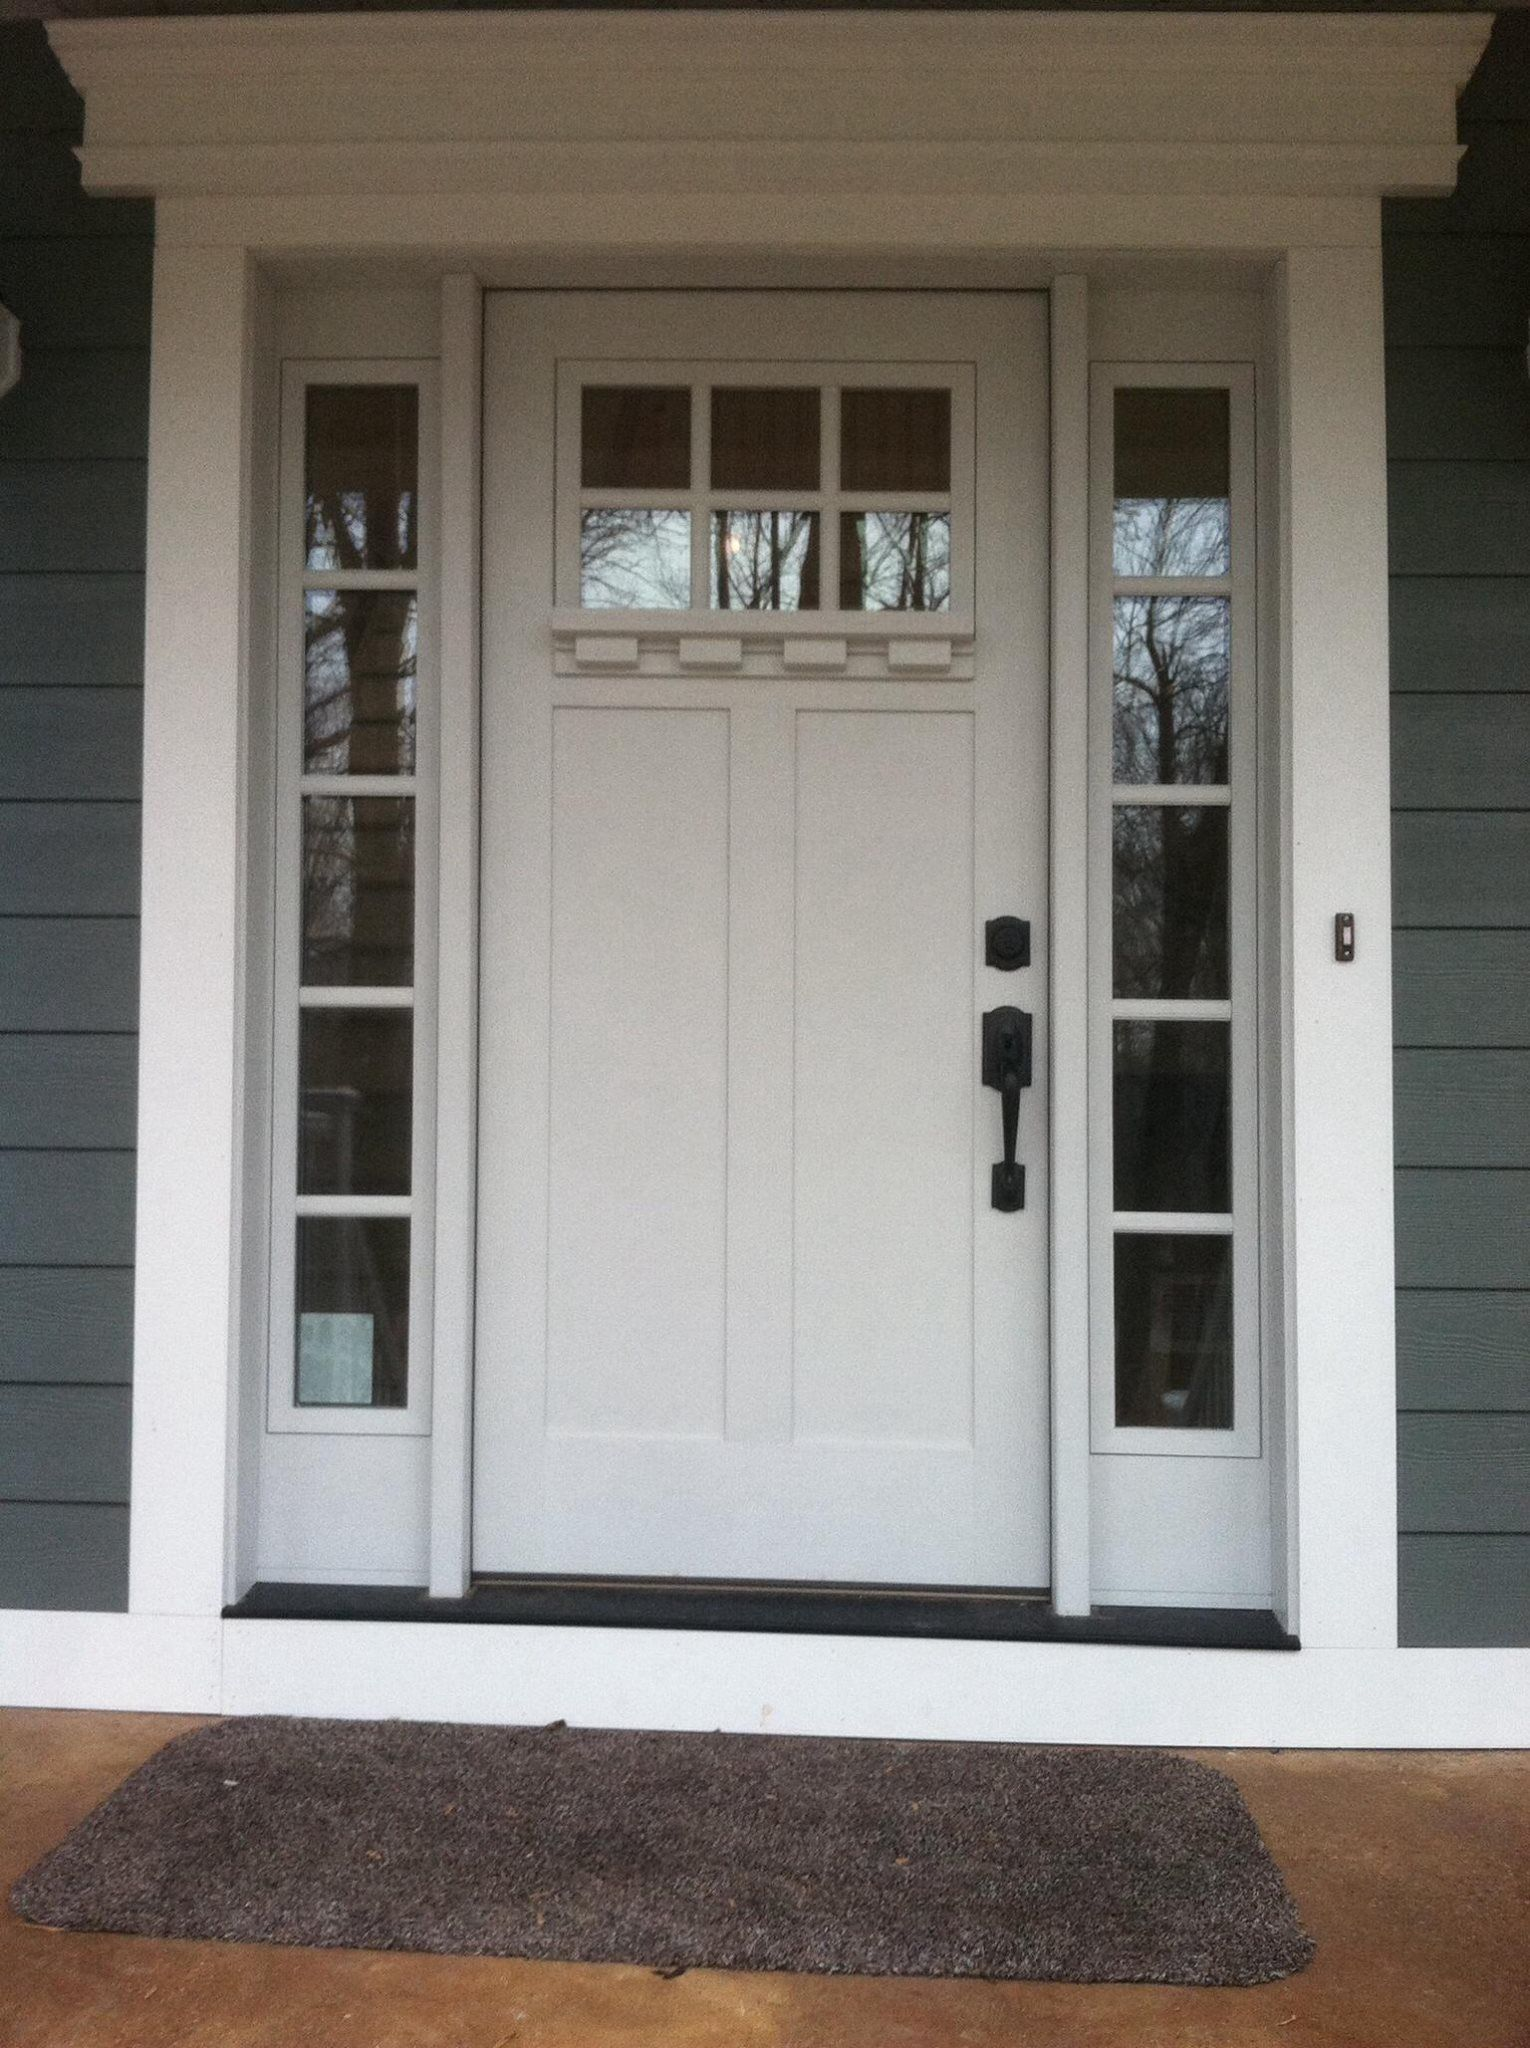 Craftsman Collection Fiberglass Entry Doors Craftsman Style Front Doors Exterior Doors With Sidelights Craftsman Front Doors